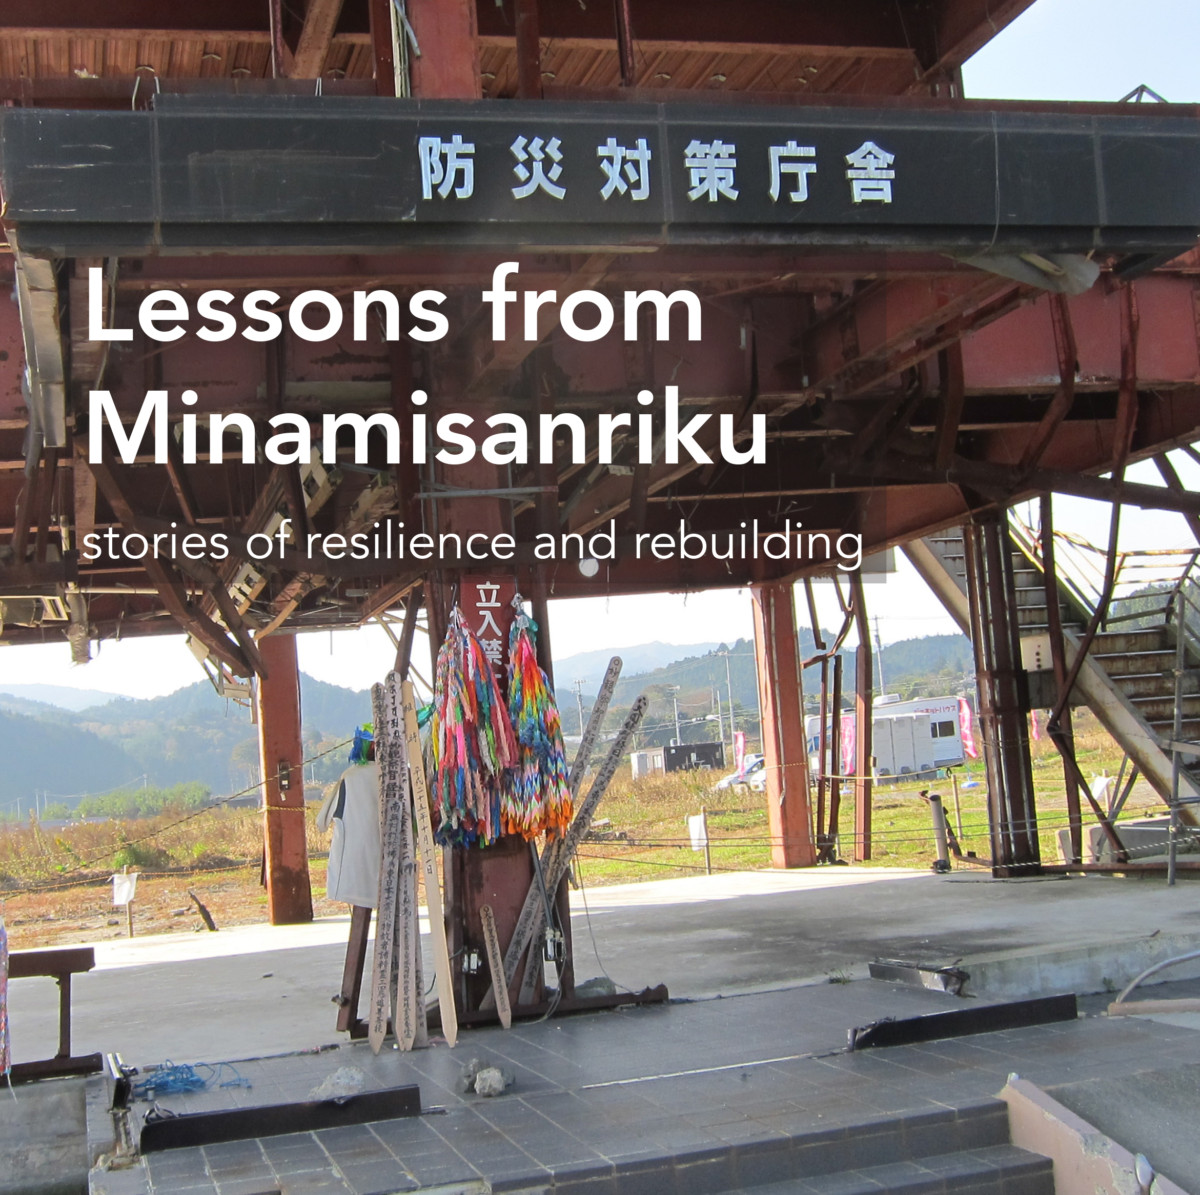 Lessons From Minamisanriku: Stories of Resilience and Rebuilding